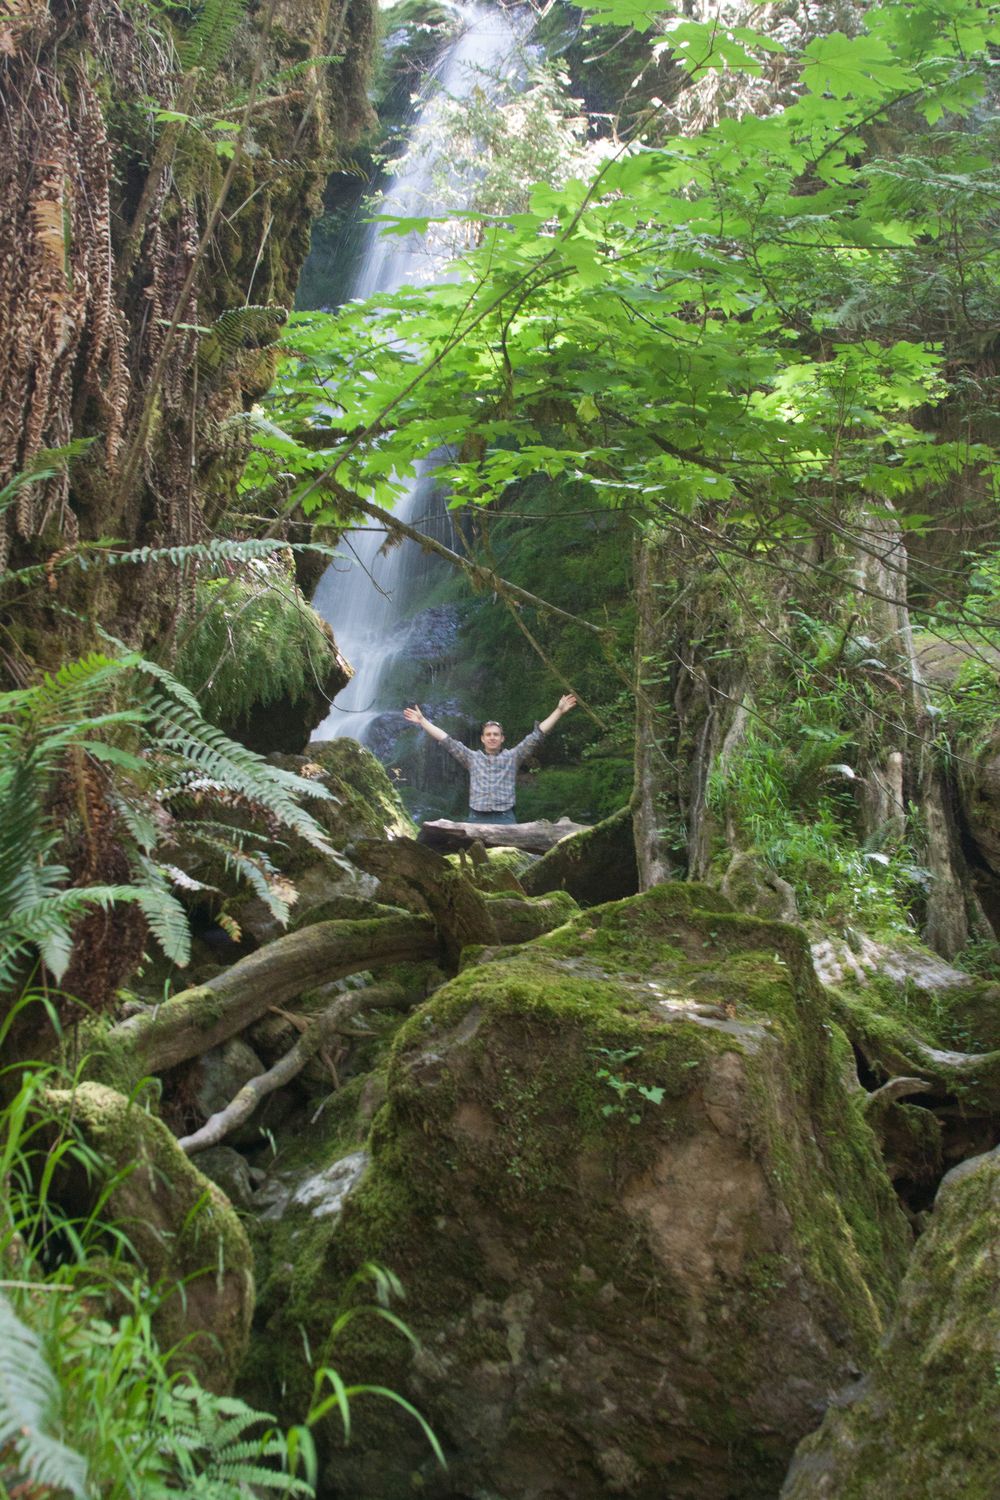 Exploring the forests of the Olympic Peninsula